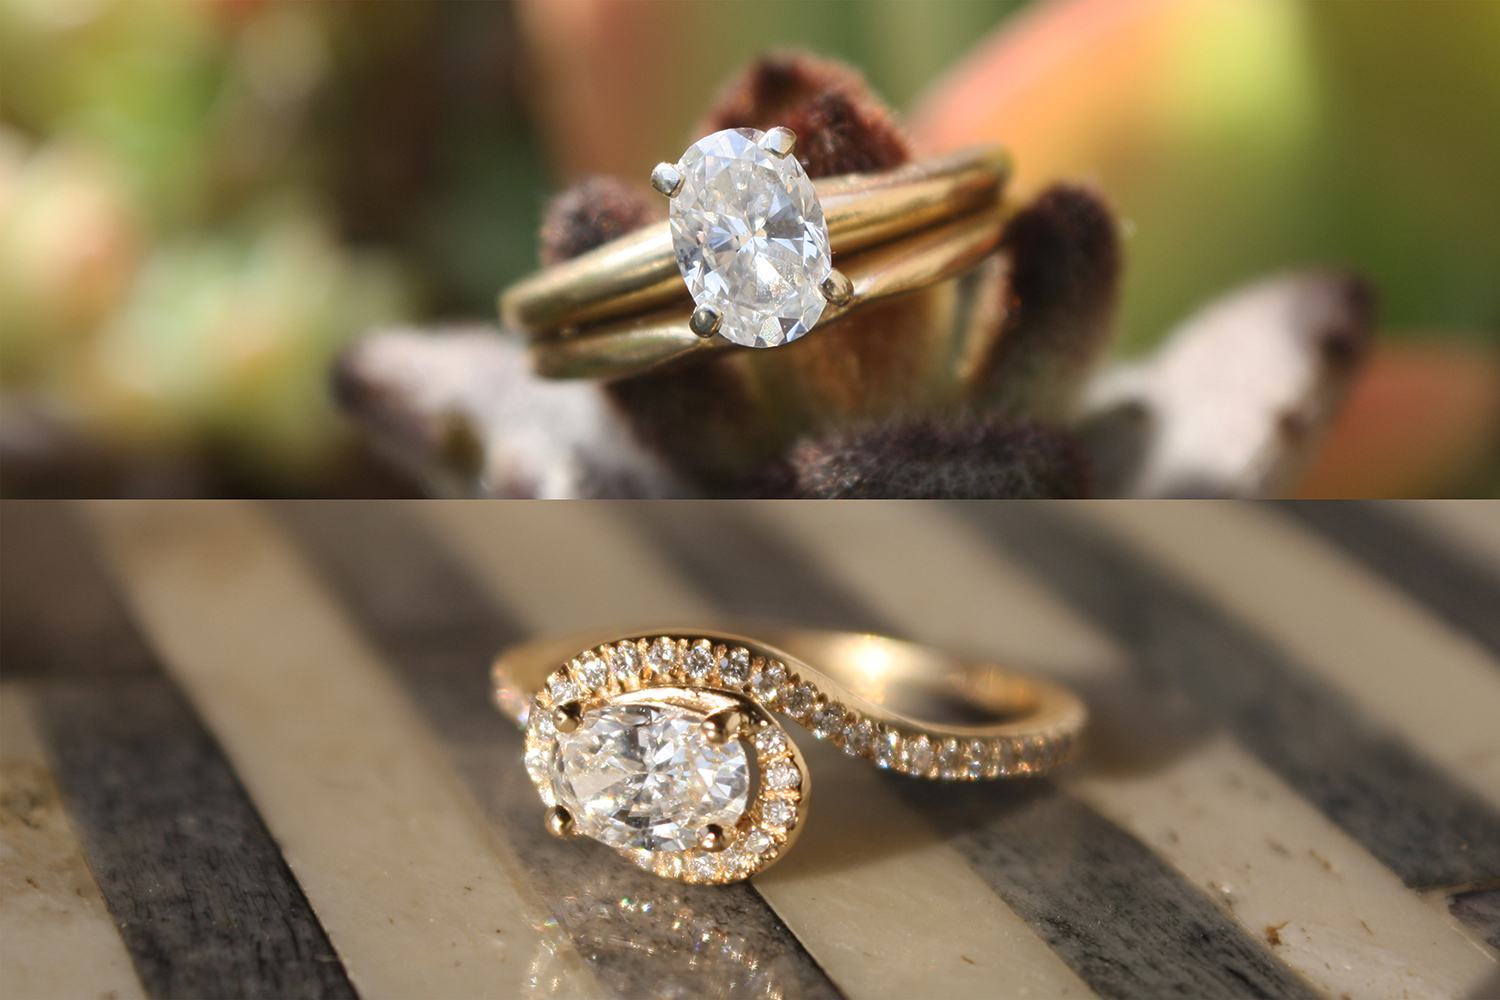 Josh+Rigali+Oval+Diamond+Ring+Before+&+After.jpg